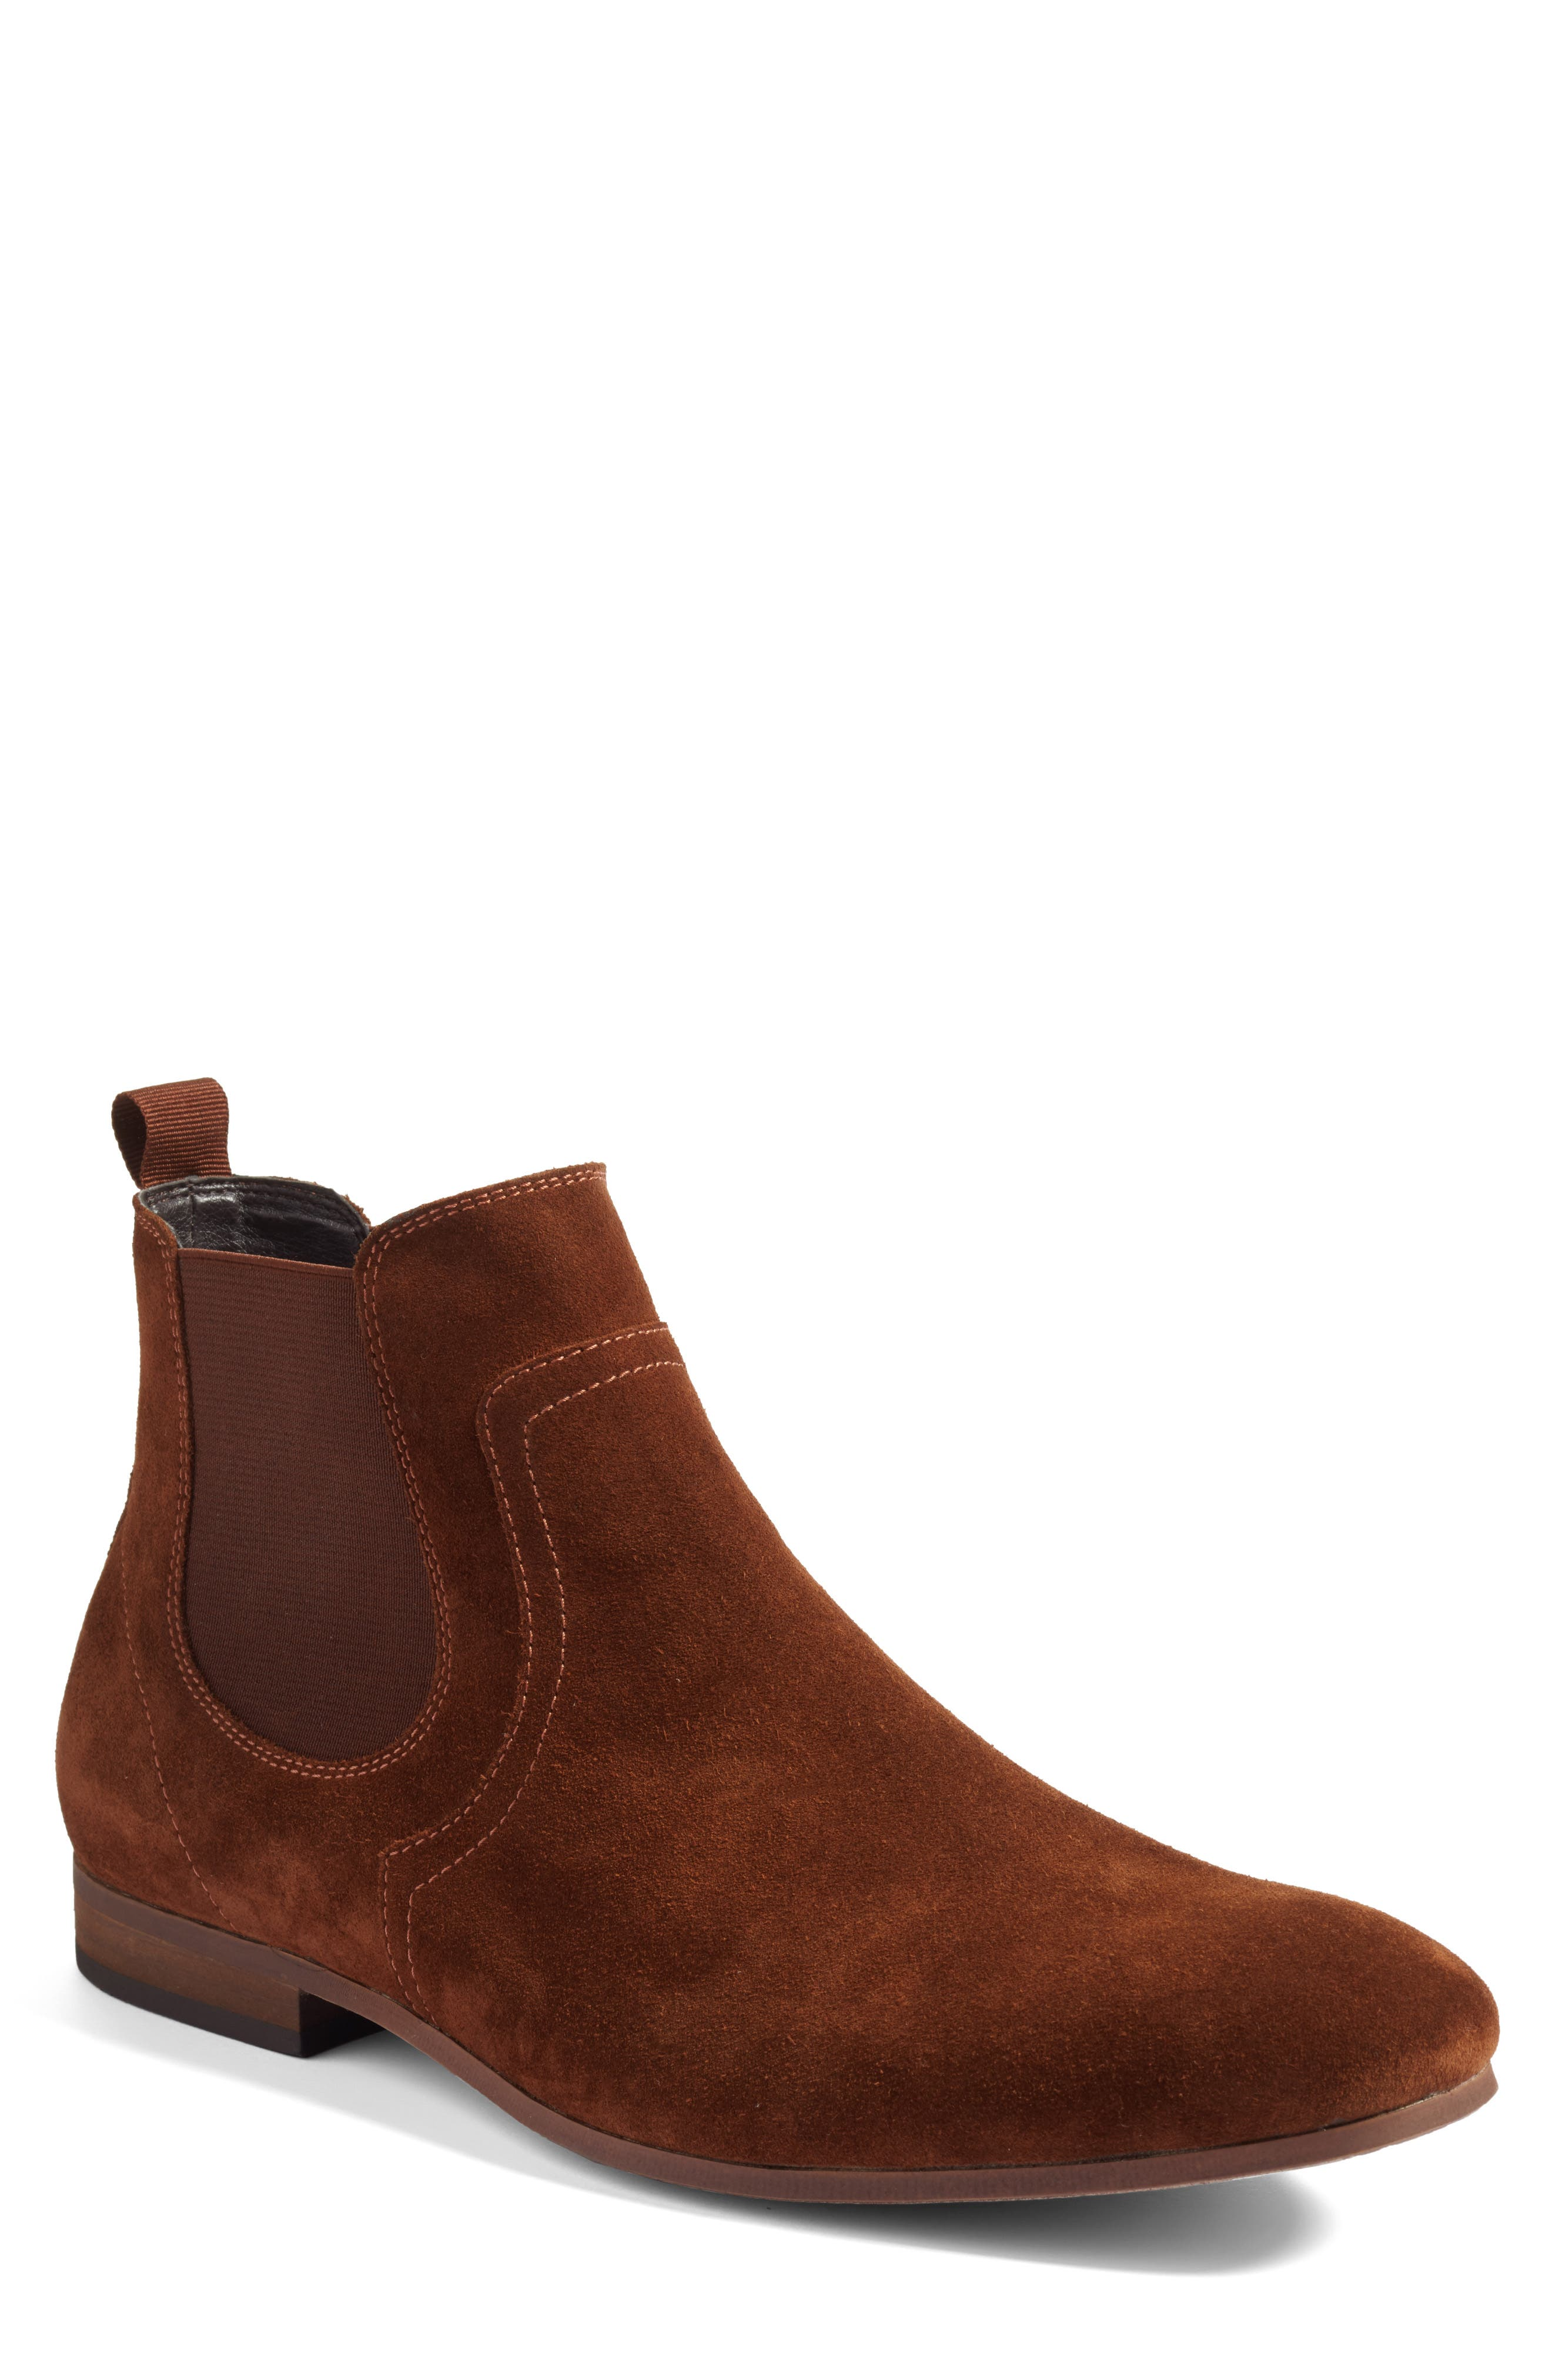 Brysen Chelsea Boot,                             Alternate thumbnail 18, color,